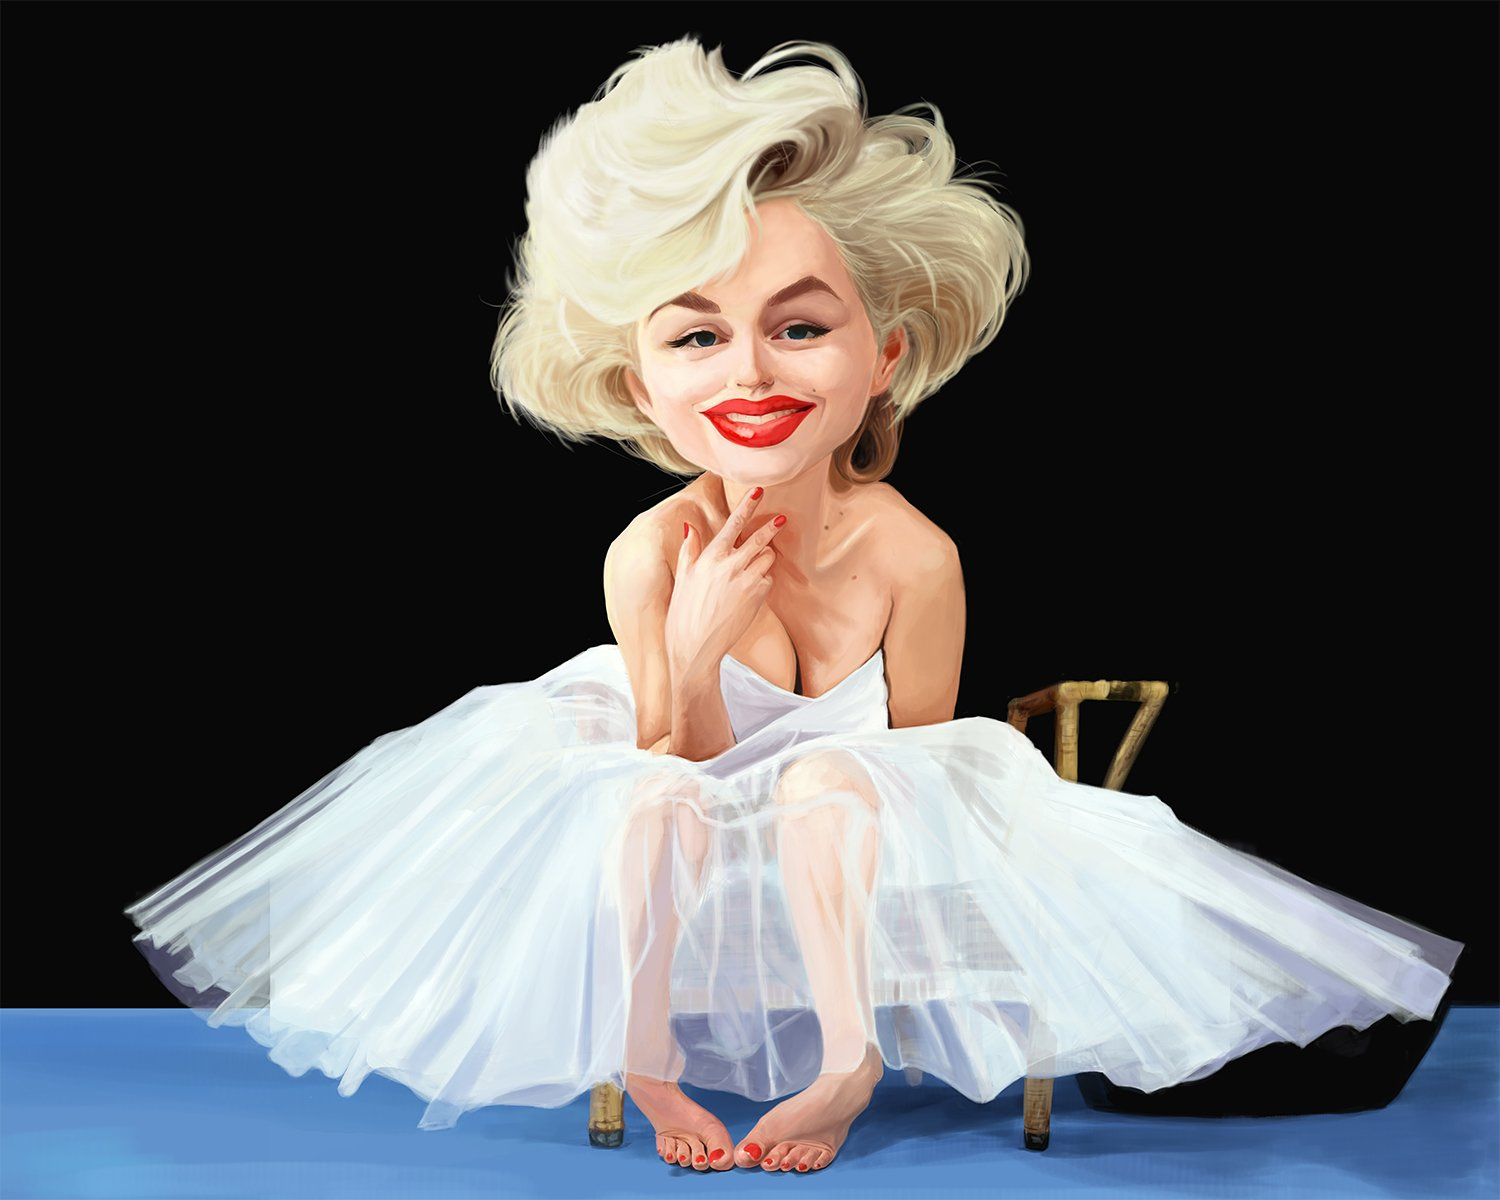 Marilyn Monroe Caricature Limited Edition (1 of 20) Large Size Giclee on Canvas Artwork: Signed, Numbered, Certificate of Authenticity, Ready to Hang, Great Home & Office Wall Decor, Gift